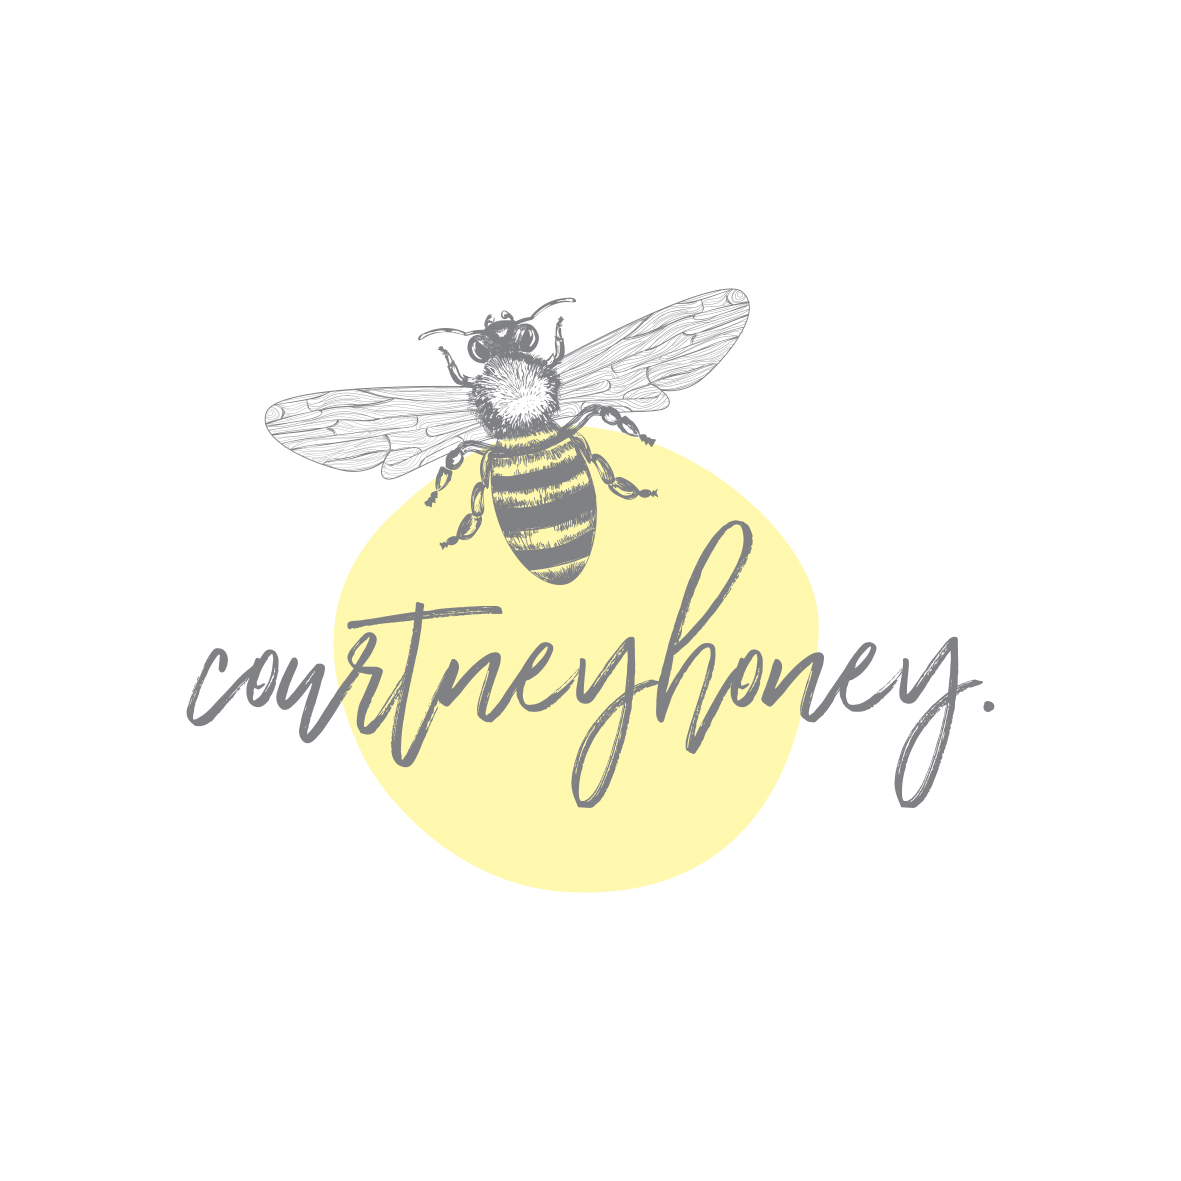 Bee logo design and blogger business branding by graphic designer Billie Hardy Creative